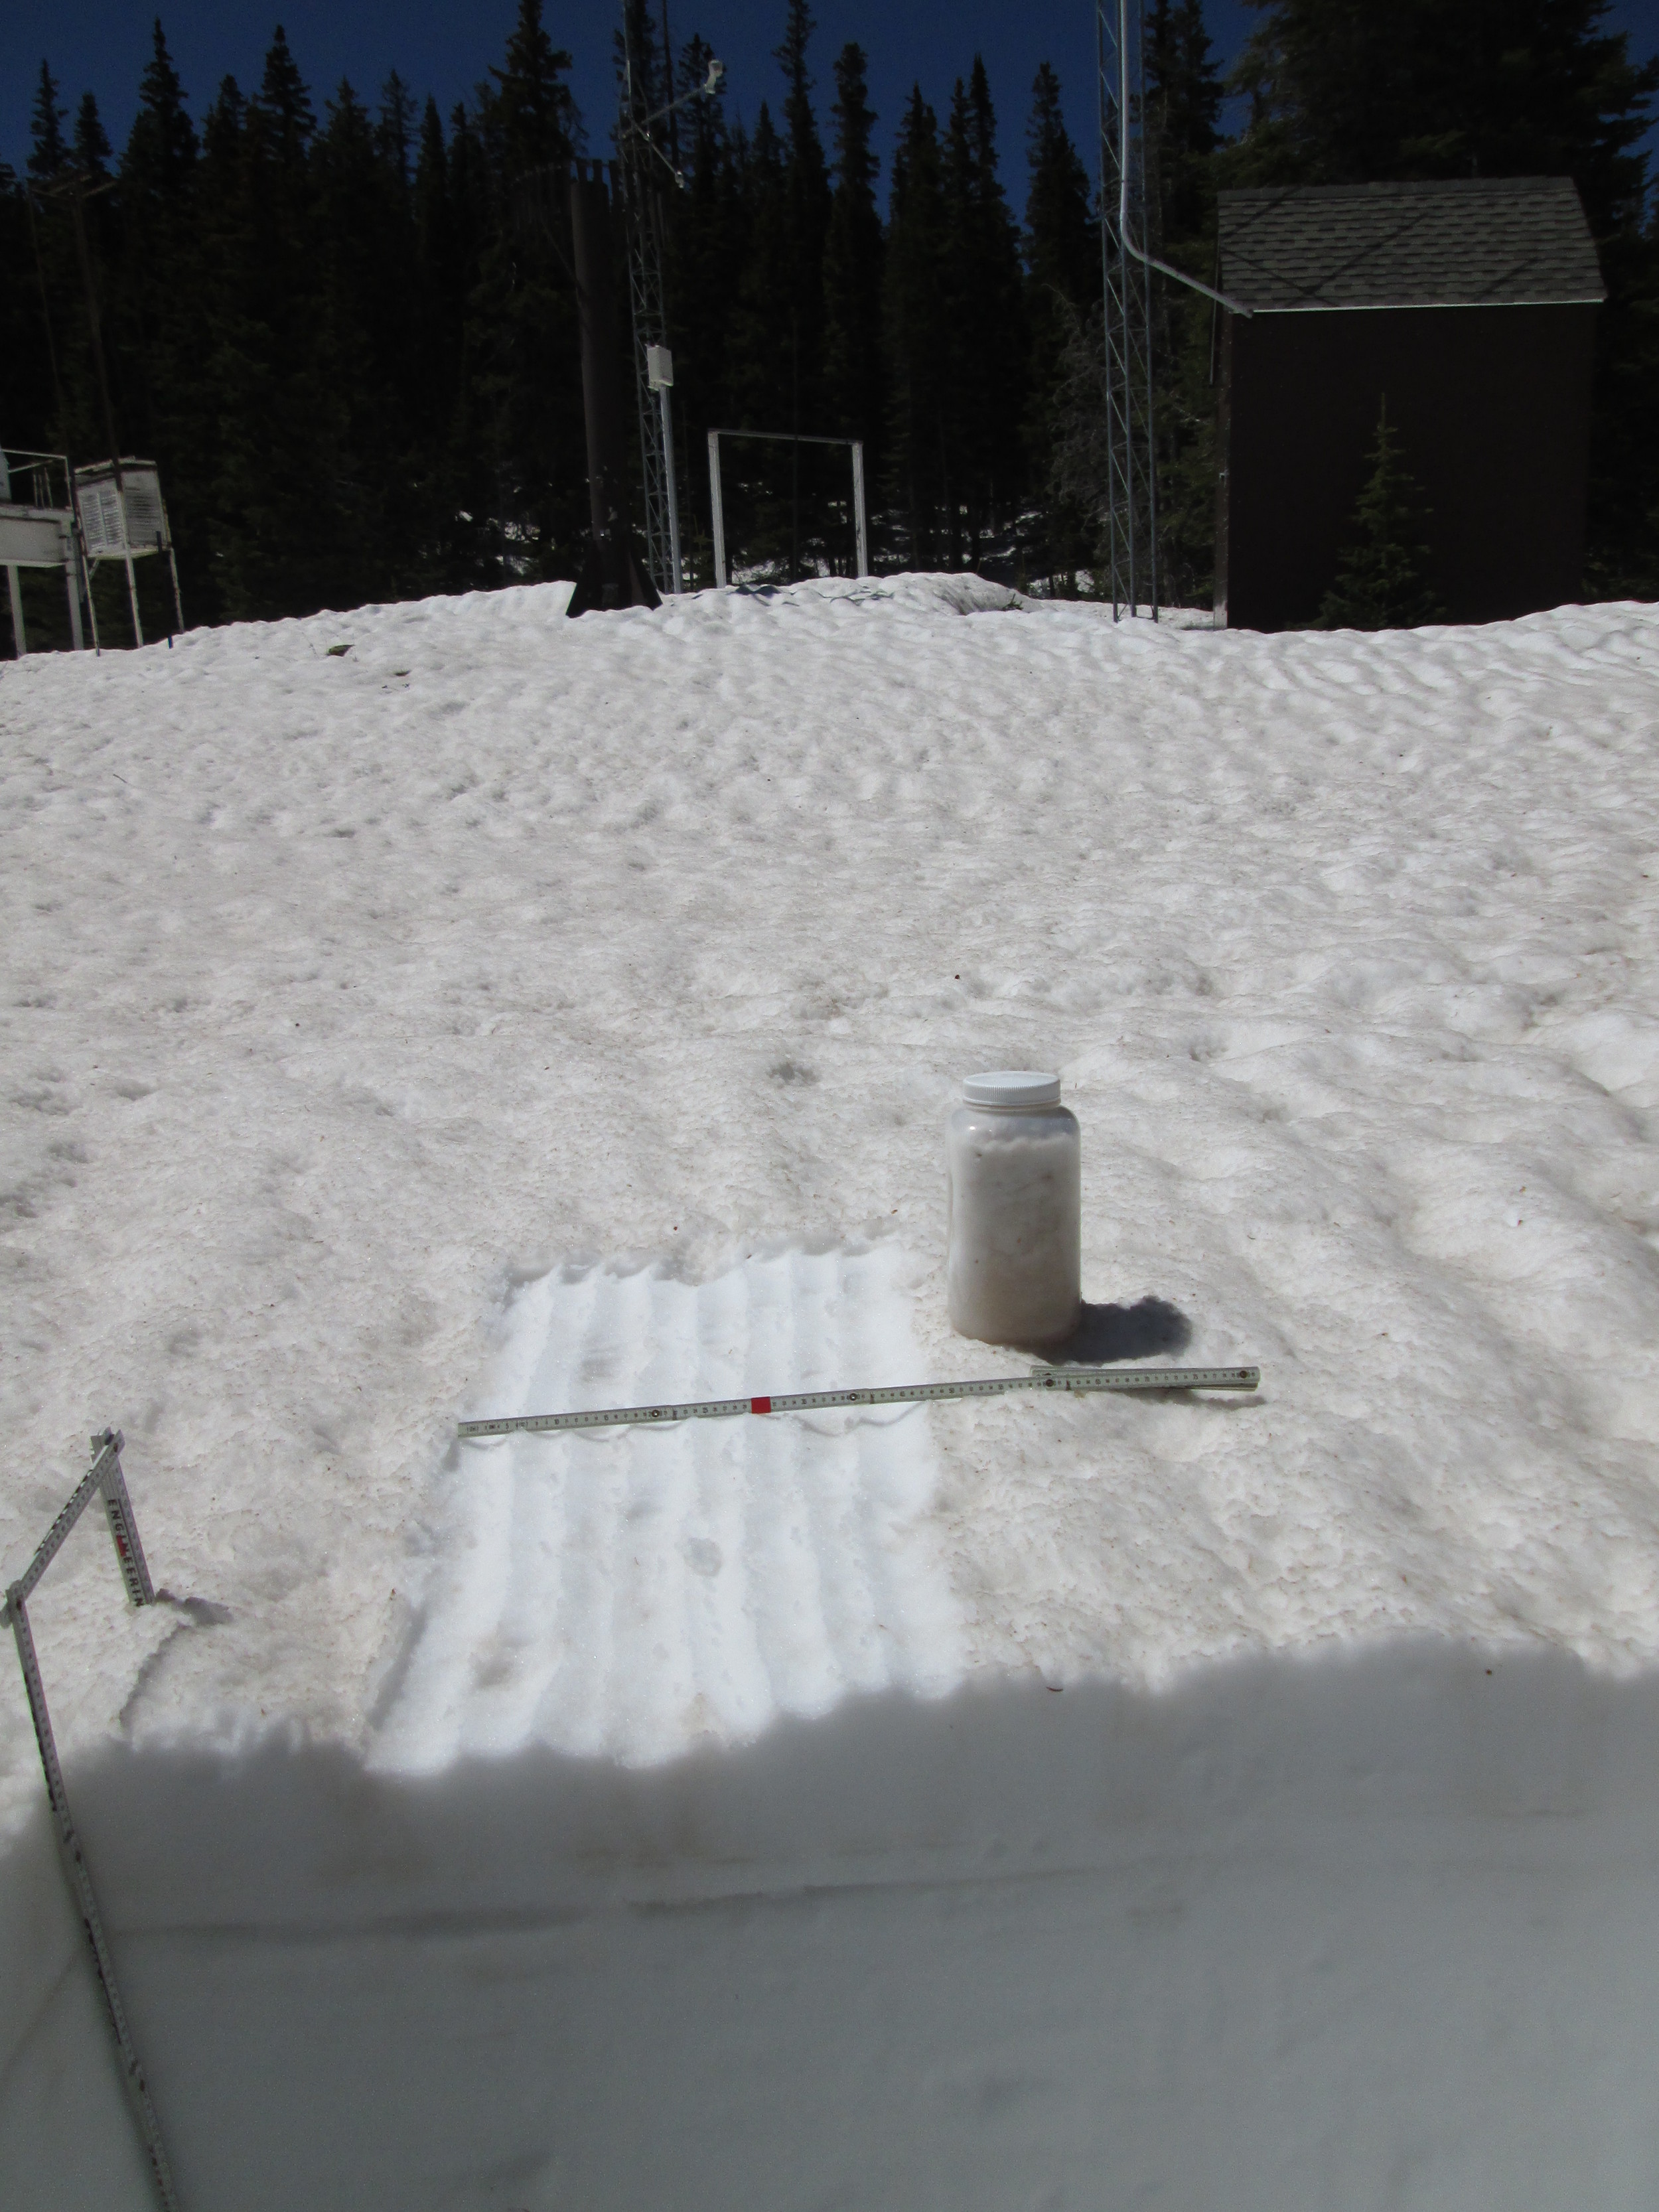 """The 35"""" deep snow pit at Berthoud Summit on June 3 contained 15.5"""" of SWE, almost exactly matching the SWE being reported at the time by the Snotel just a few yards away. Merged dust containing at least events D3, D4, and D8 was exposed at the surface and an 'all layers merged' (ALM) sample was collected from an area measuring 1.00 m x 0.48 m, or 0.48 m2. Dirty melt water from the snow surface had percolated downward in """"preferred flow channels"""" into the underlying clean snowcover before spreading laterally at a layer boundary within the snowpack and creating a layer of dust-stained slush, as seen here a few inches below the surface in the snow pit face. Nonetheless, the ALM sample did capture the vast majority of the merged dust material, for analysis of its chemical and other properties."""